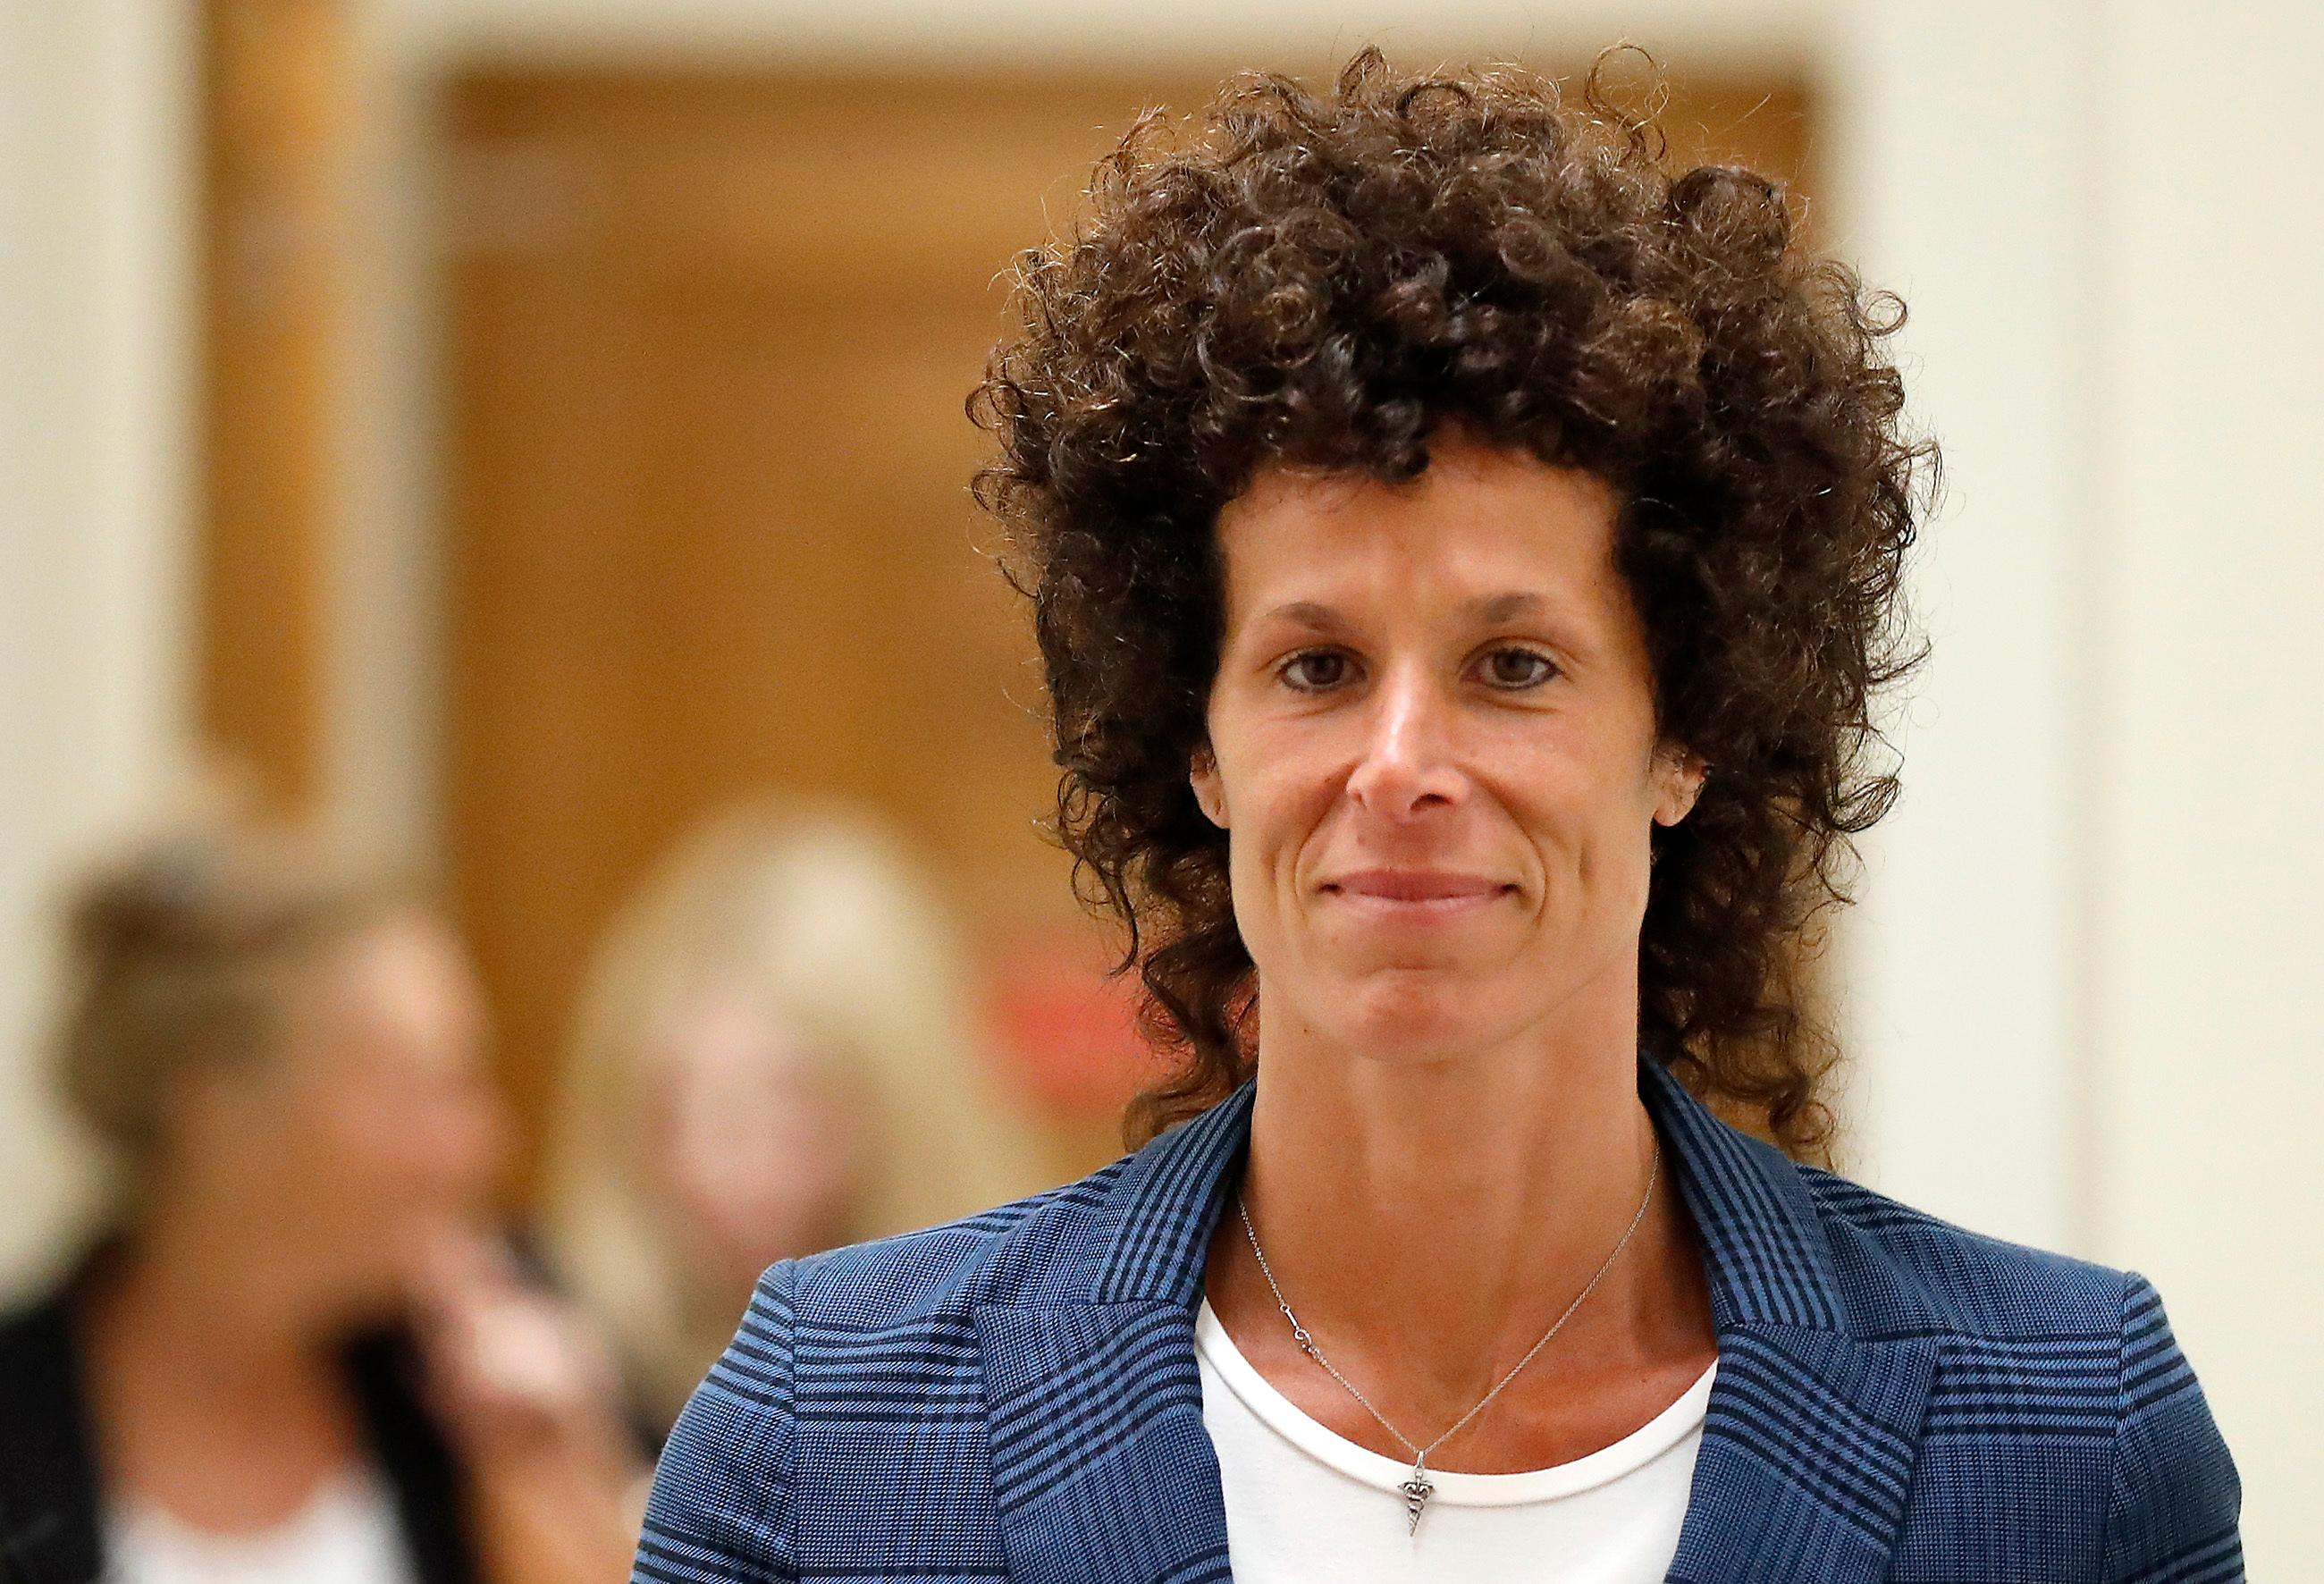 Andrea Constand leaves the courtroom after closing arguments in Bill Cosby's sexual assault trial at the Montgomery County Courthouse in Norristown, Pa., Monday, June 12, 2017. Cosby is accused of drugging and sexually assaulting Constand at his home outside Philadelphia in 2004. (David Maialetti/The Philadelphia Inquirer via AP, Pool)